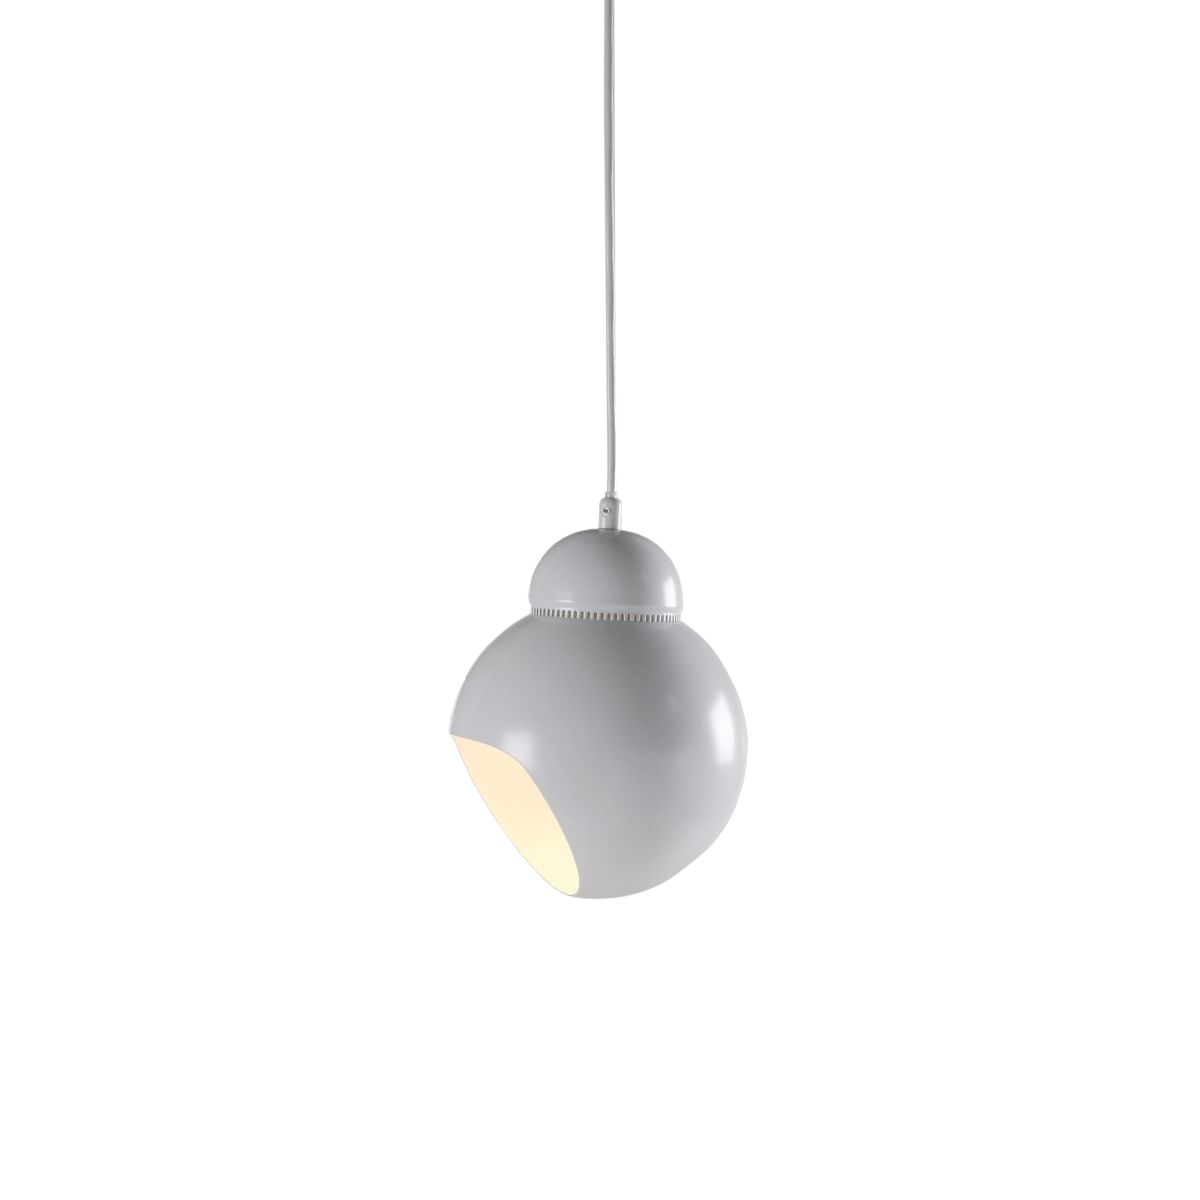 Pendant-Light-A338-_Bilberry_-Cut-Out-On_Web-1975945